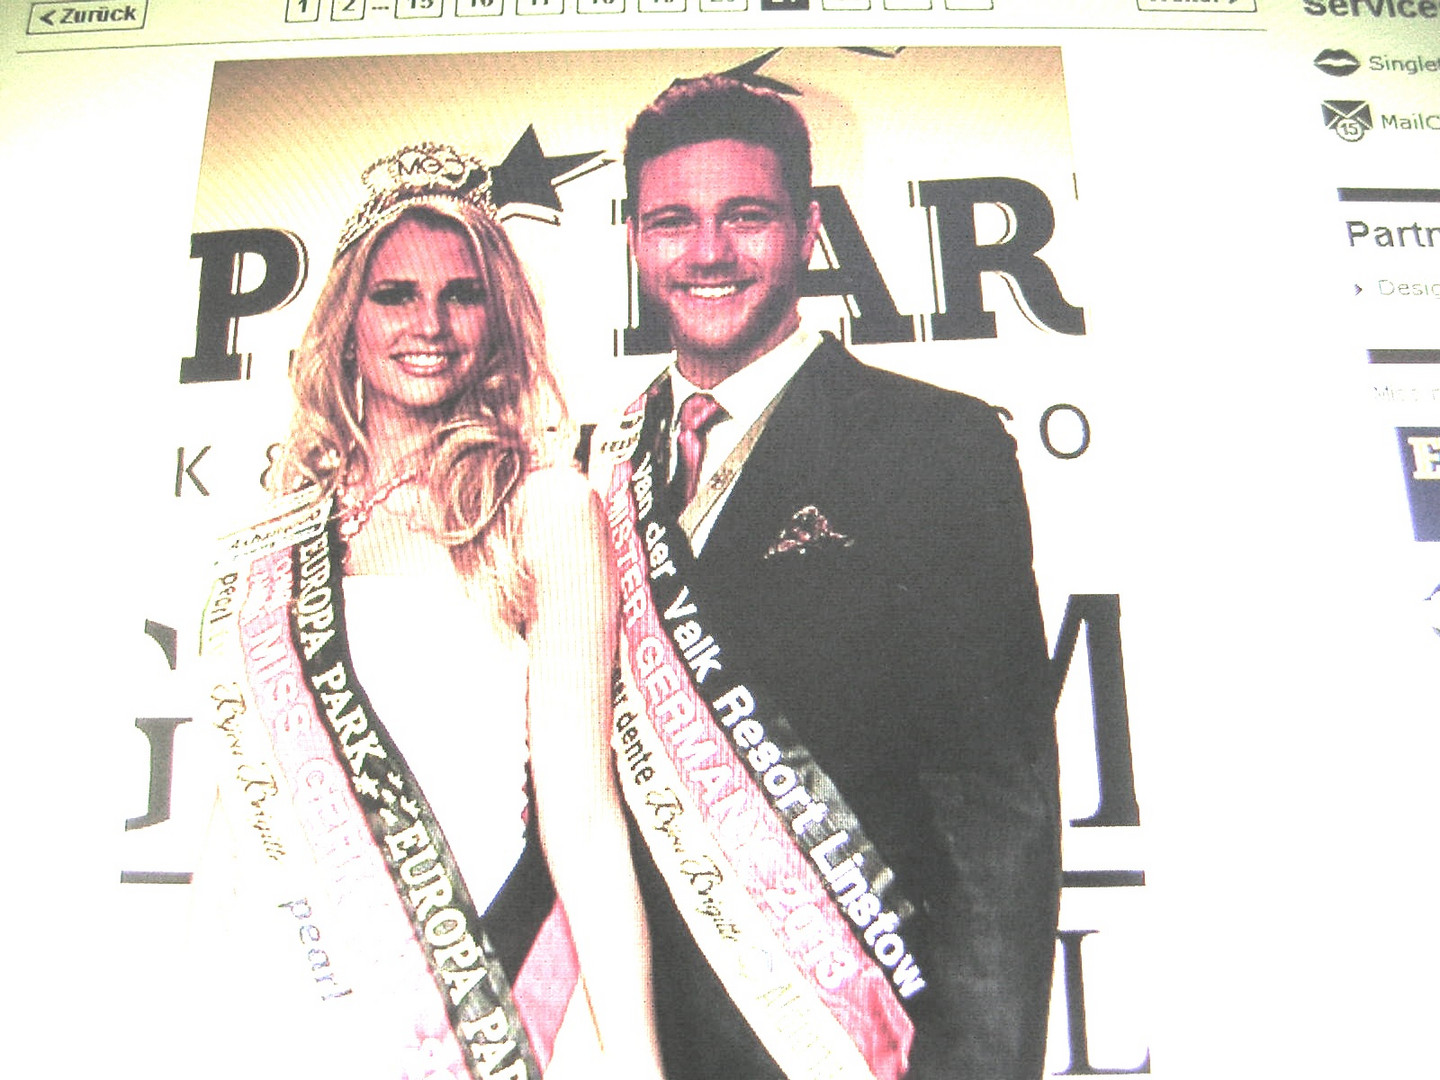 Miss Germany 2013 und amtierender Mister Germany